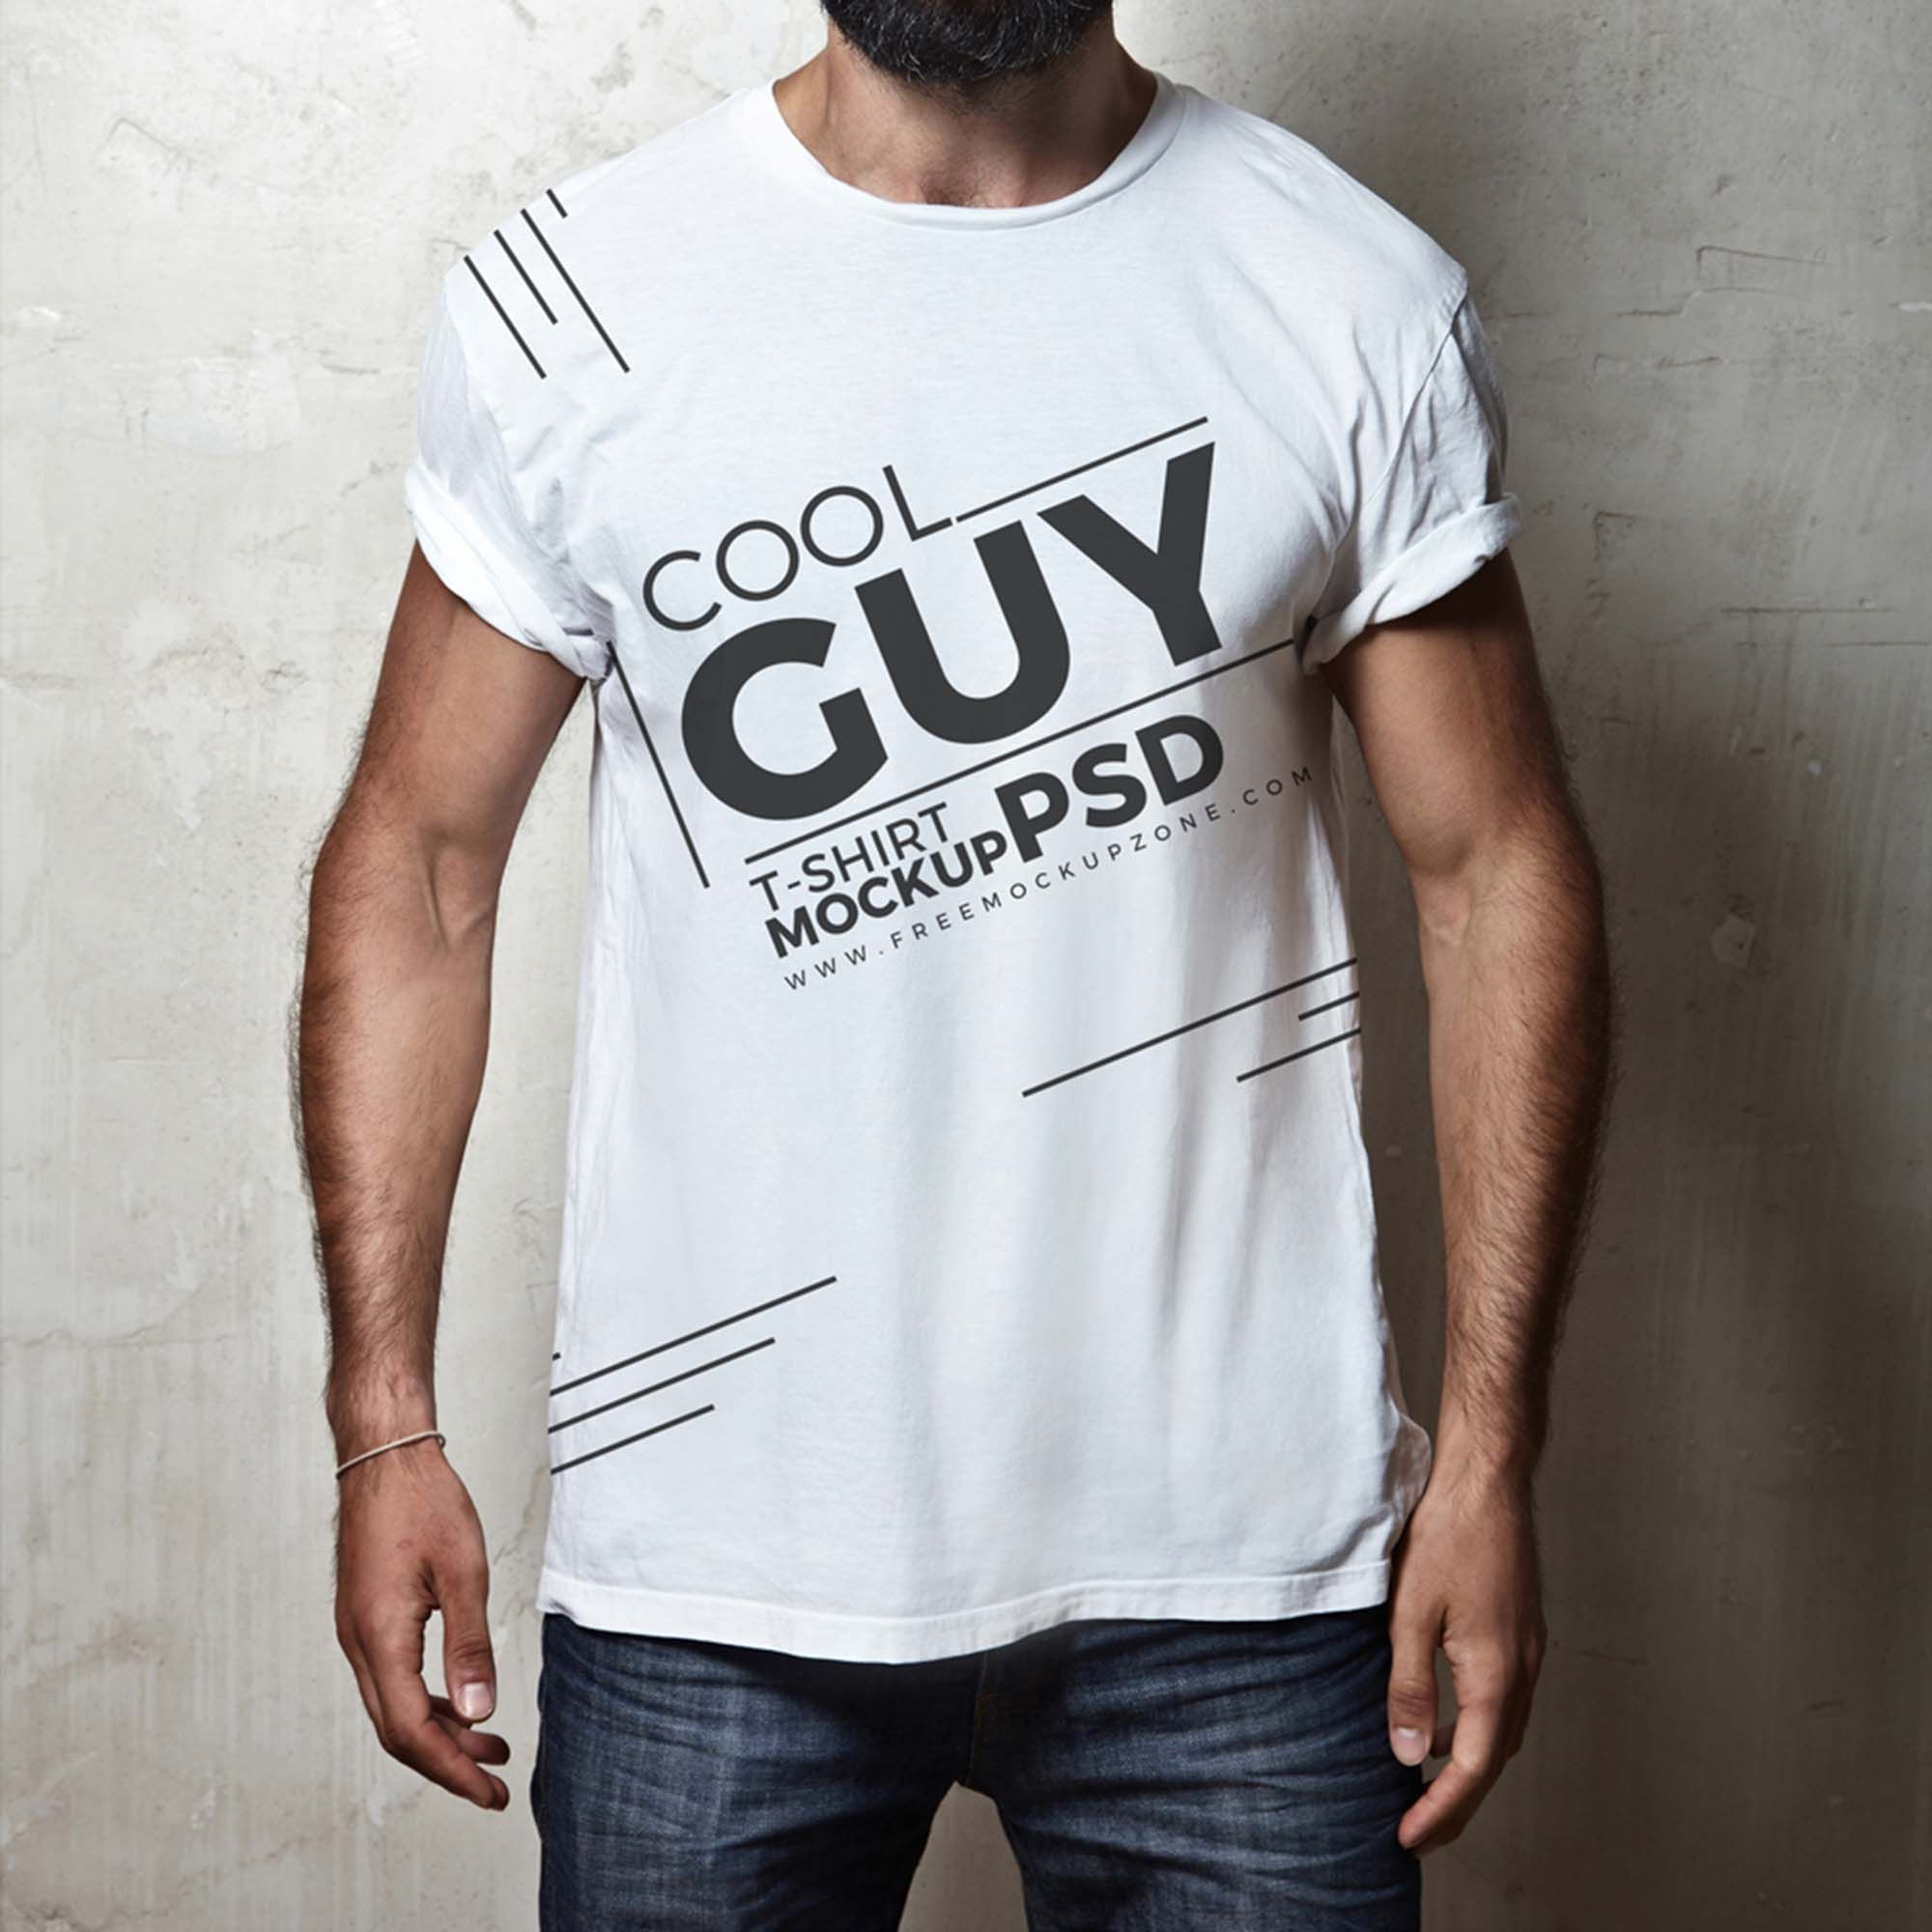 Download Cool T Shirt Designs Google Search Tshirt Mockup Shirt Mockup T Shirt